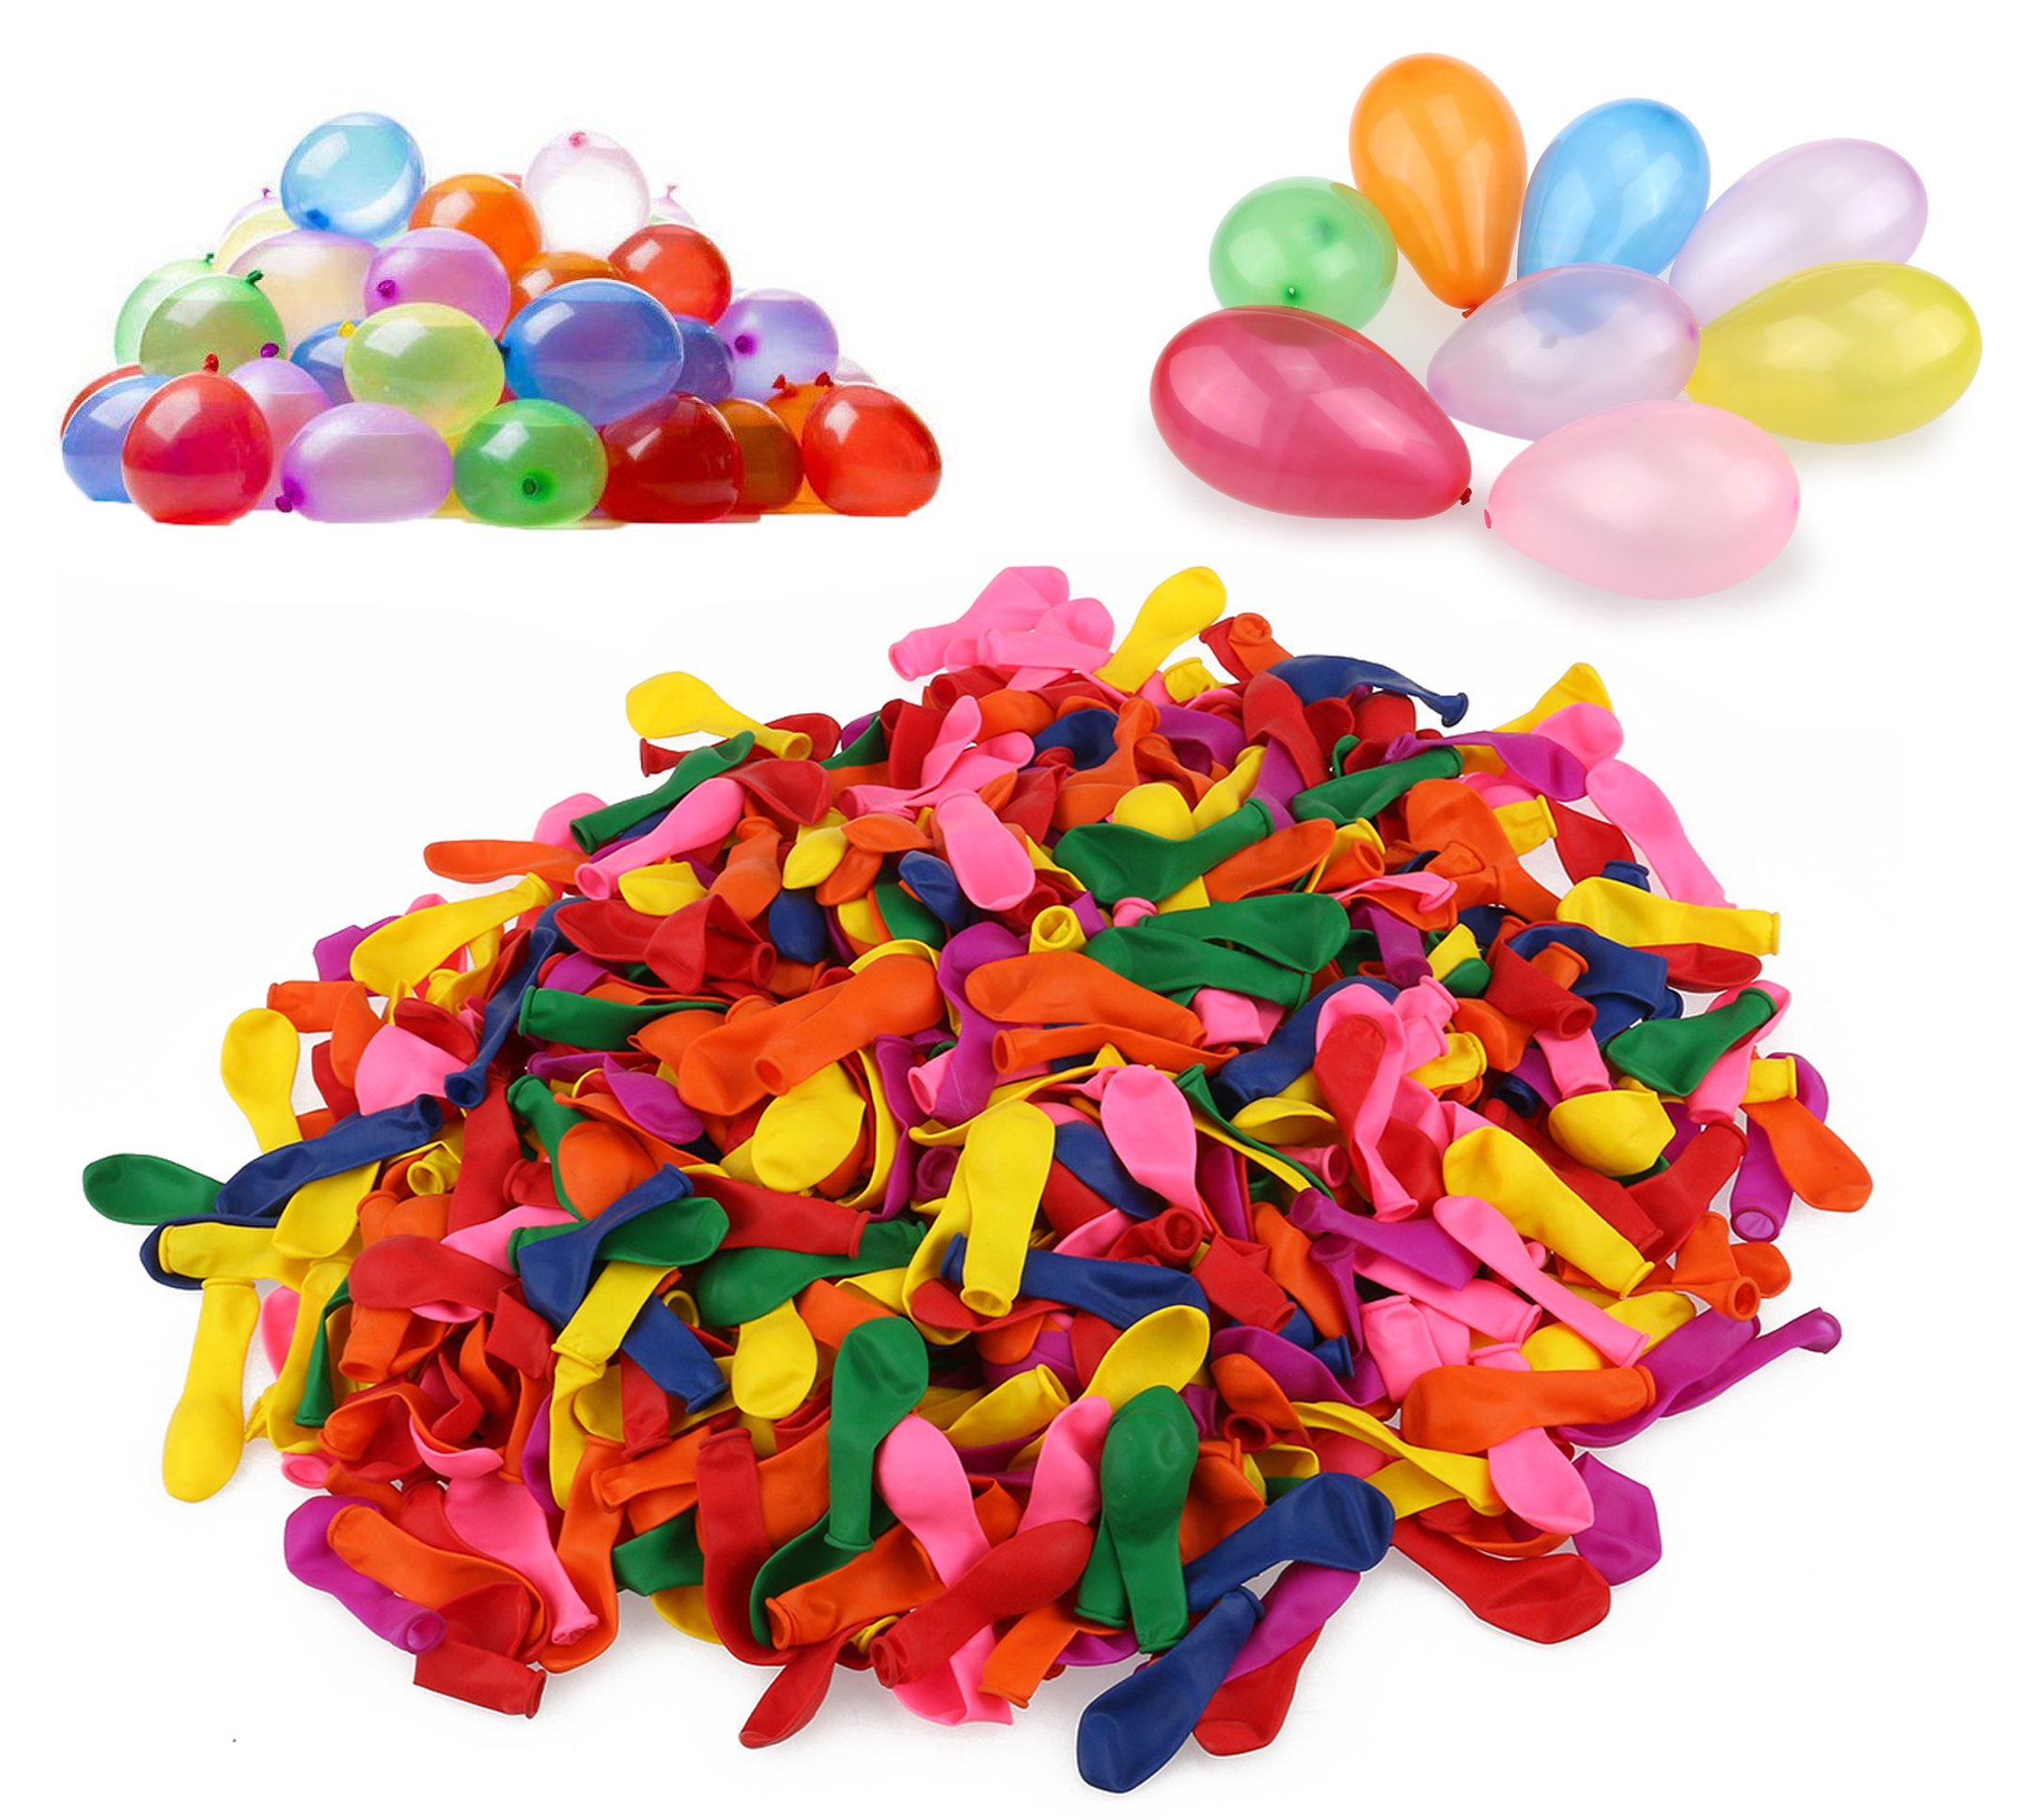 Playoly 2000 Water Balloons Ready to Fill - Fun Spring Colors And Premium Quality Balloon